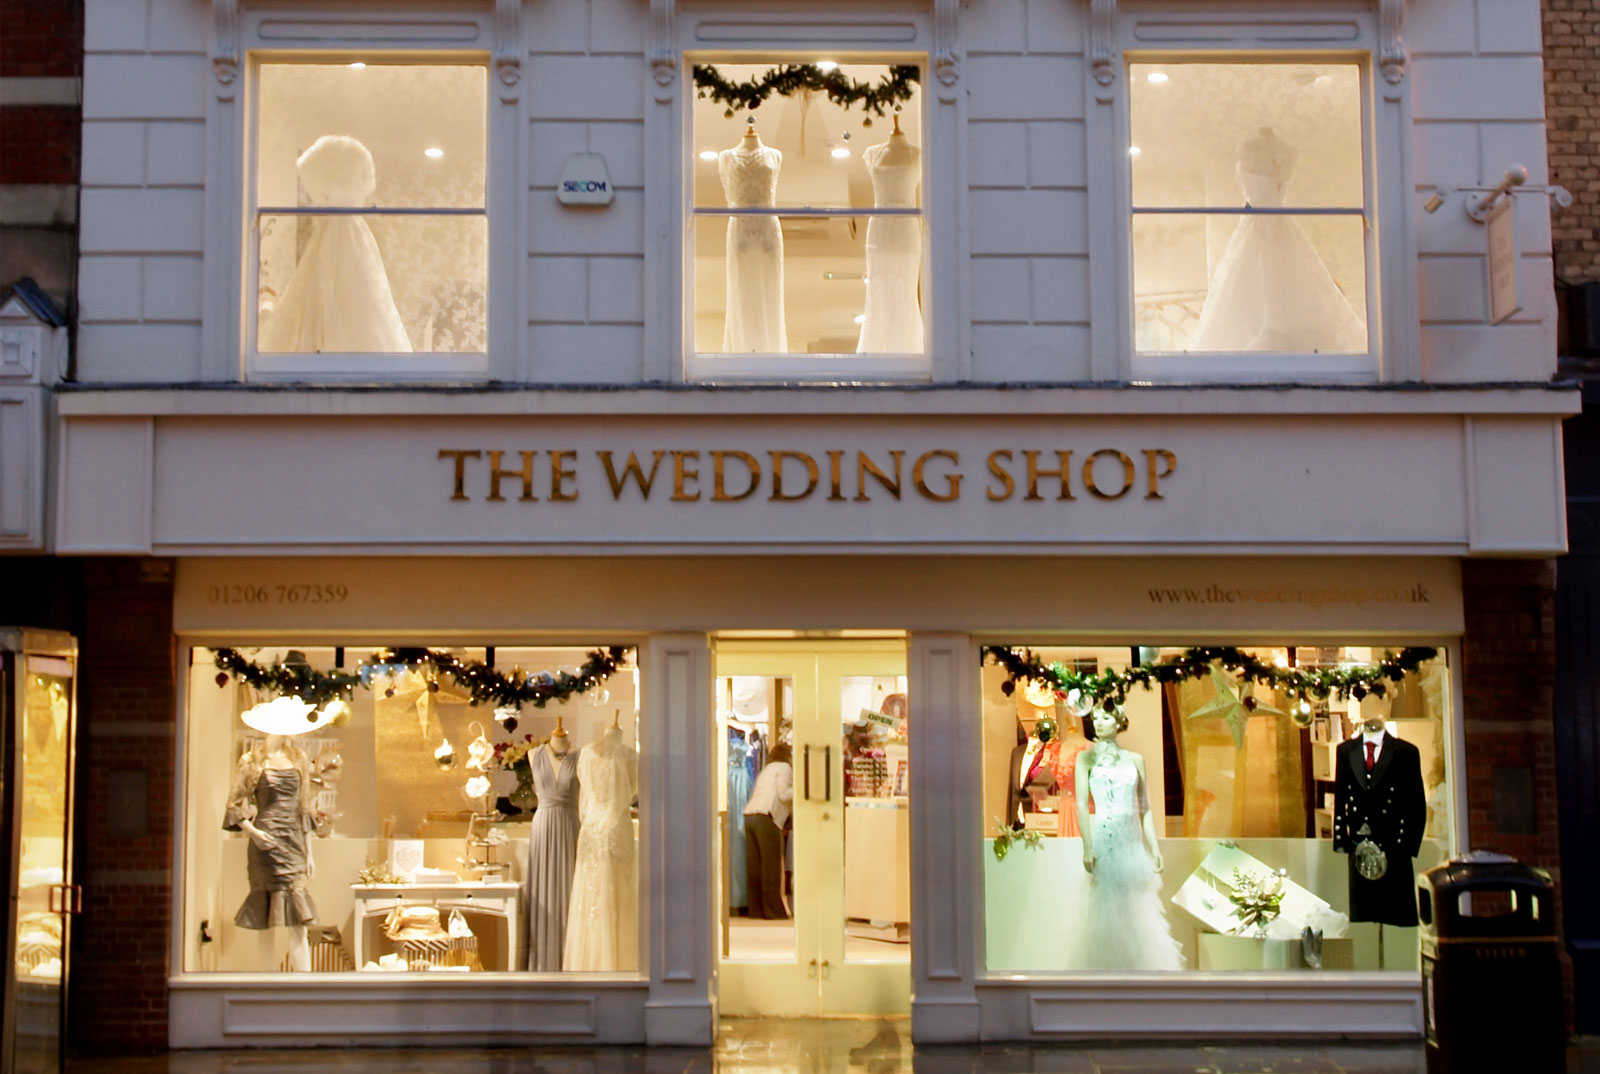 The Wedding Shop exterior